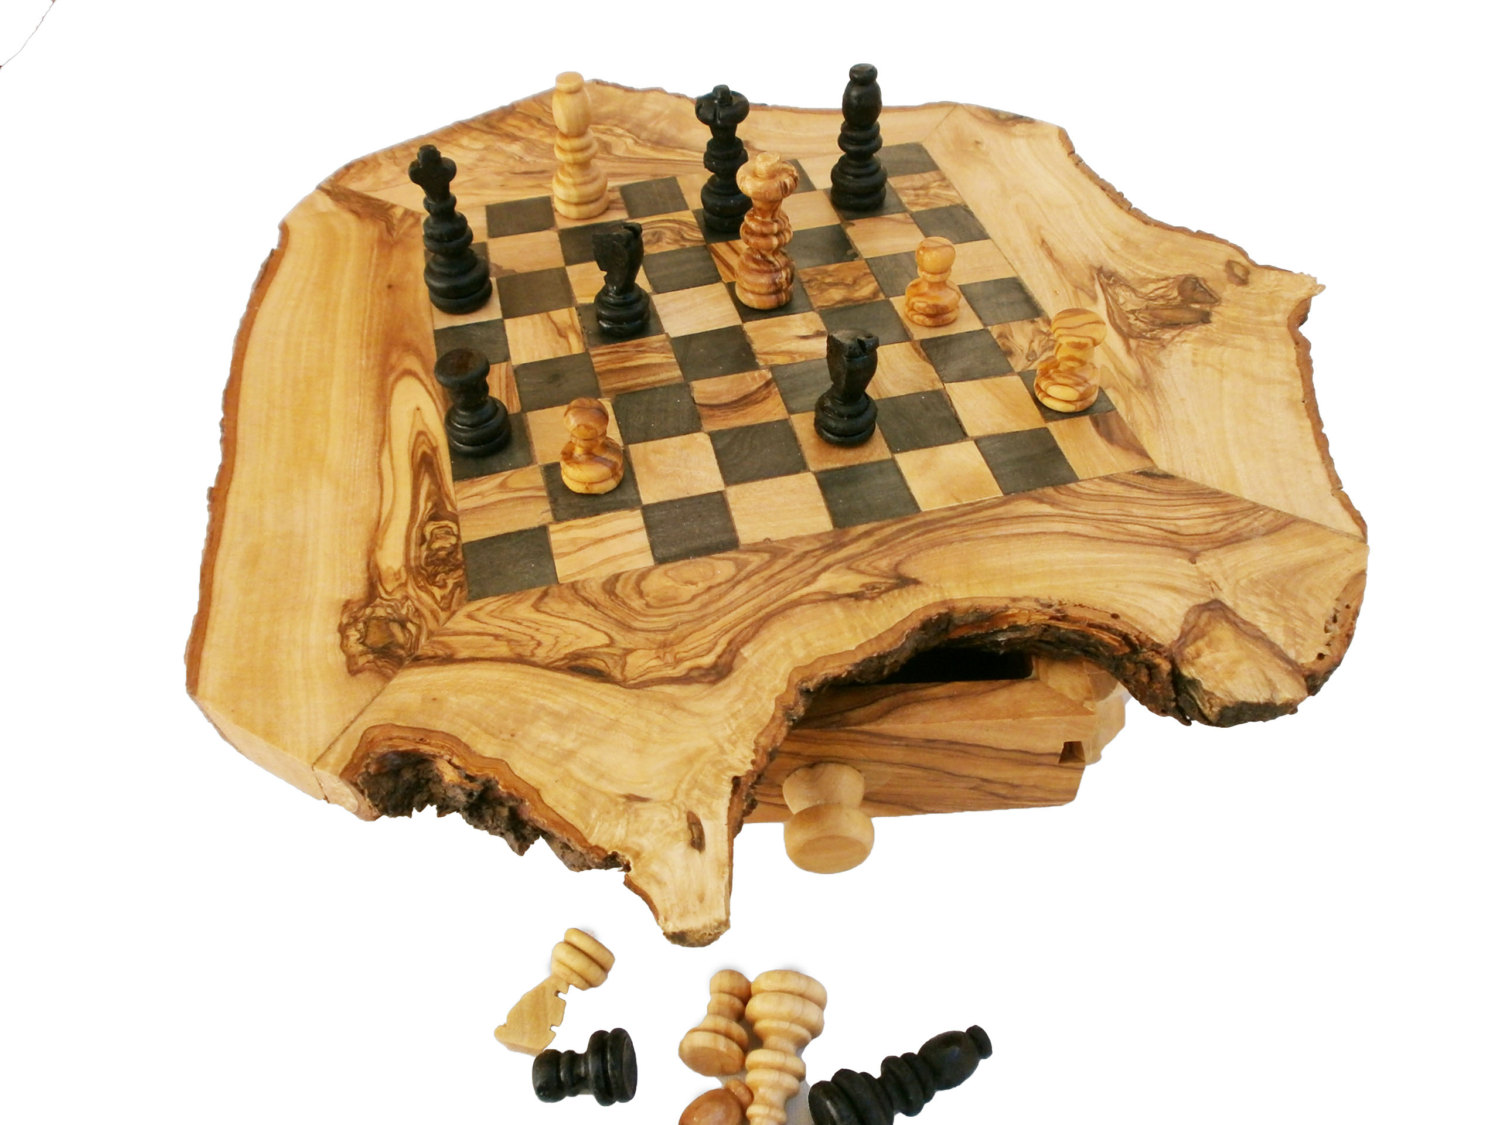 Personalized Chess Set Gift Olive Wood Rustic Chess Set Natural Edge Chess Board Dad